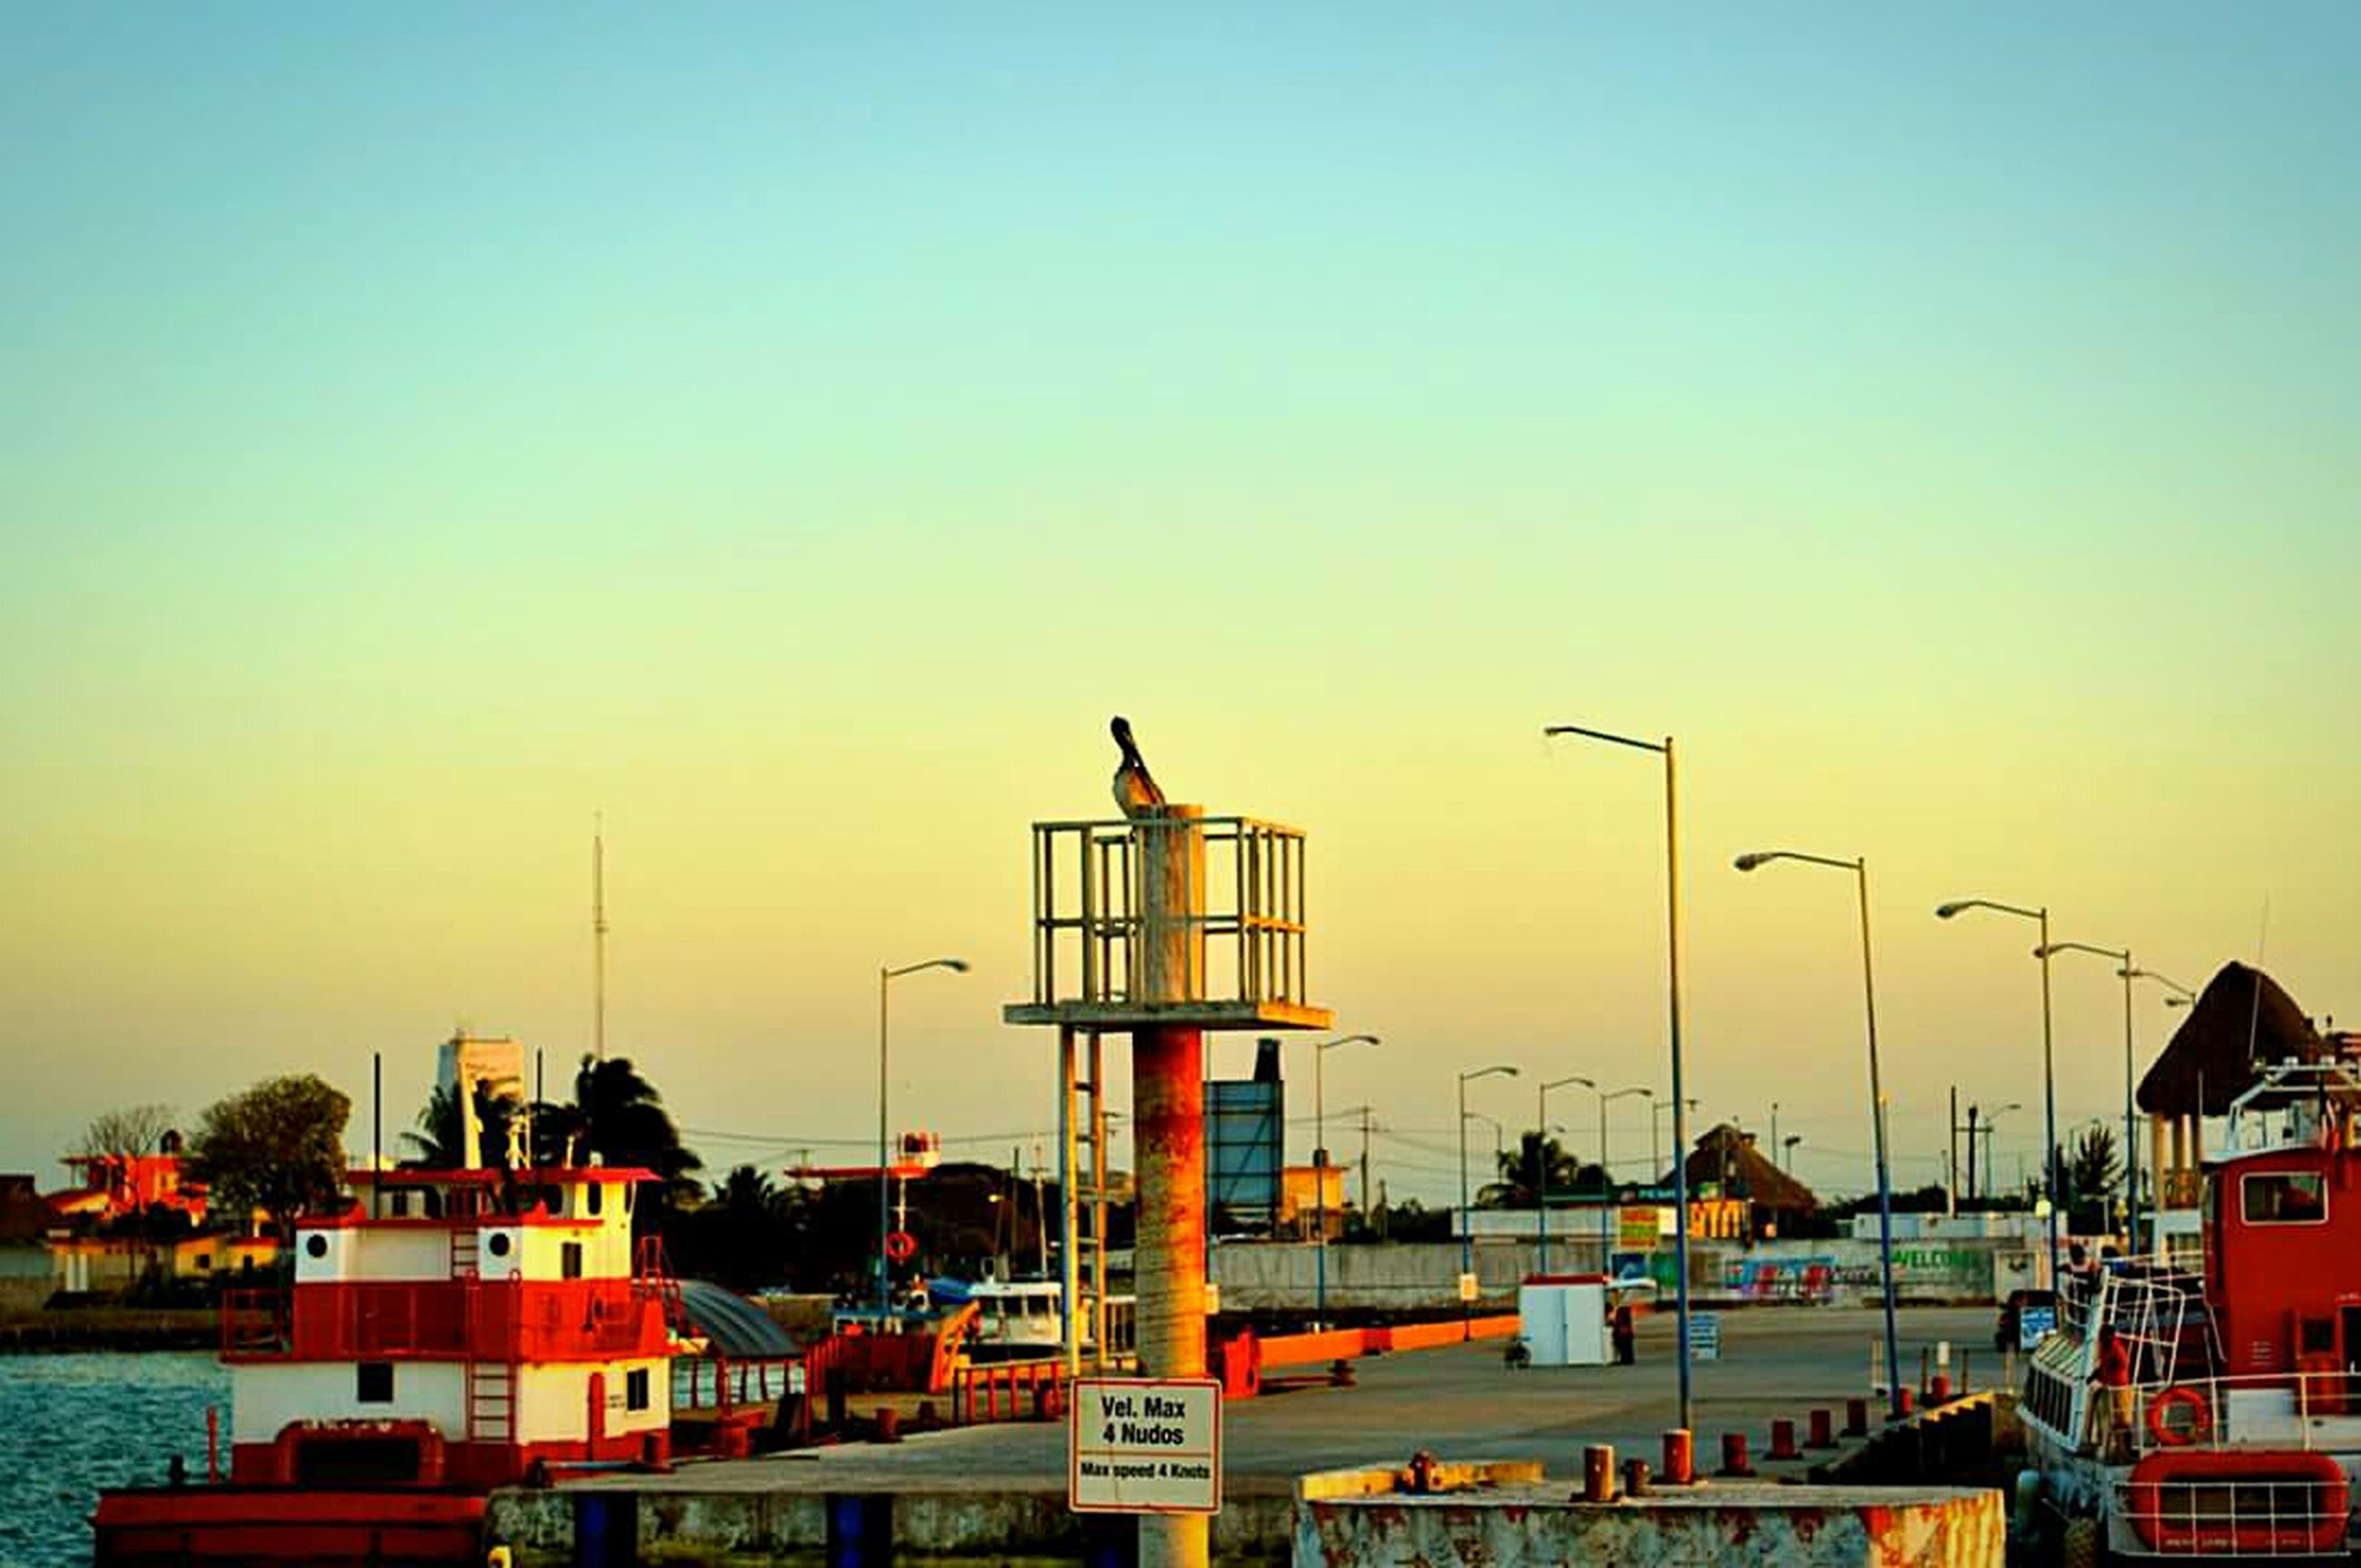 building exterior, architecture, built structure, clear sky, copy space, sunset, orange color, blue, industry, outdoors, no people, city, house, residential structure, harbor, residential building, water, sky, building, roof